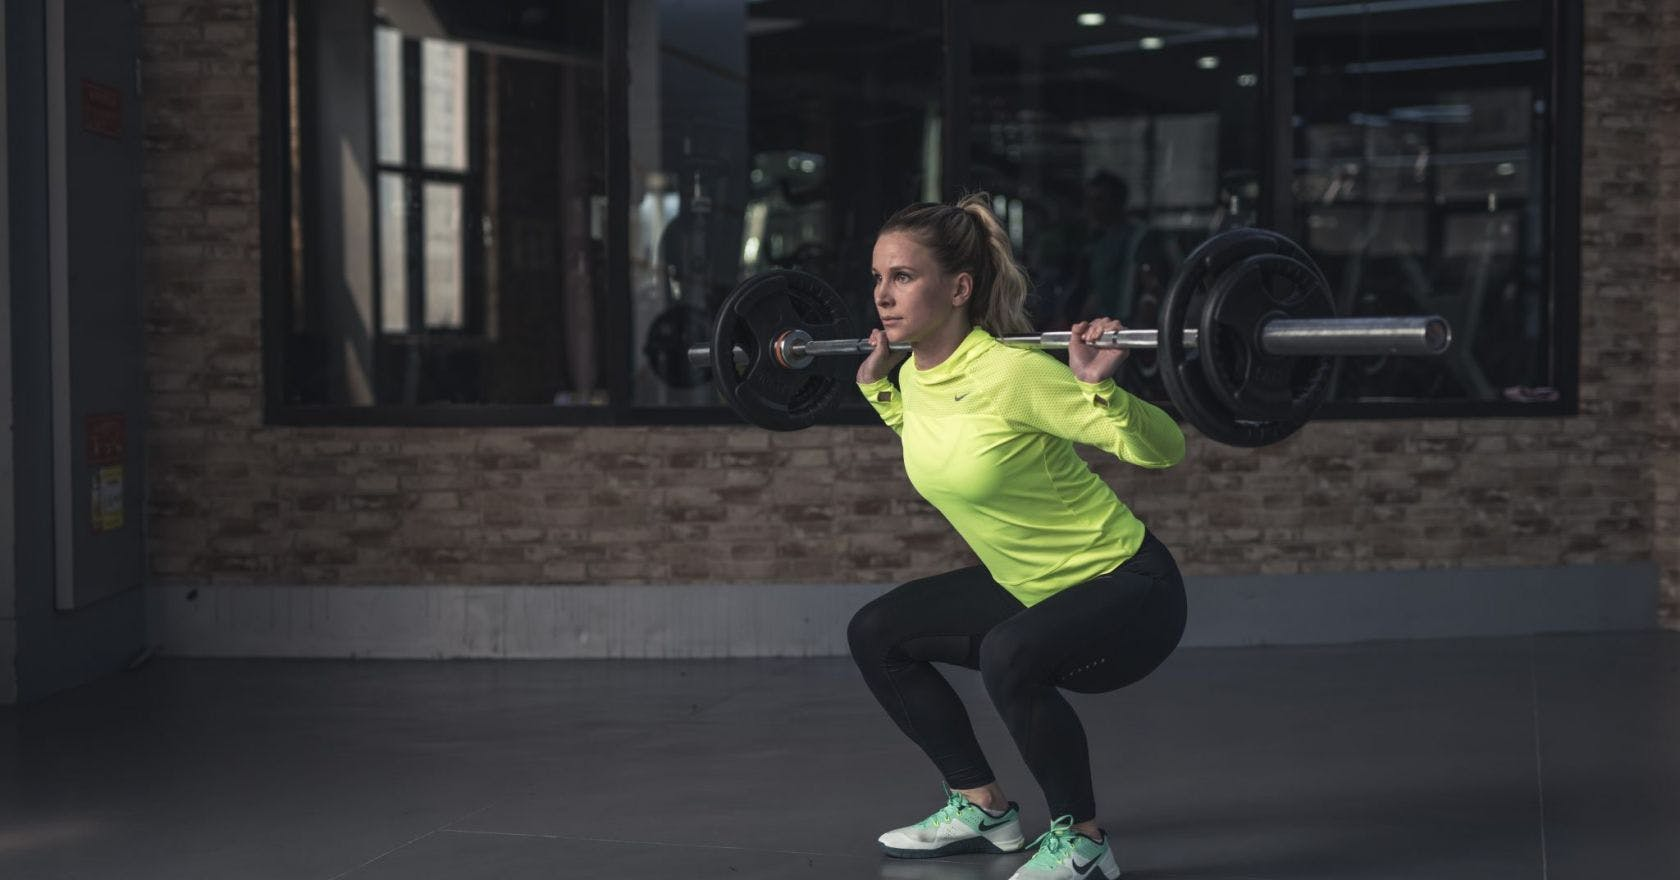 Should women be training differently to men?